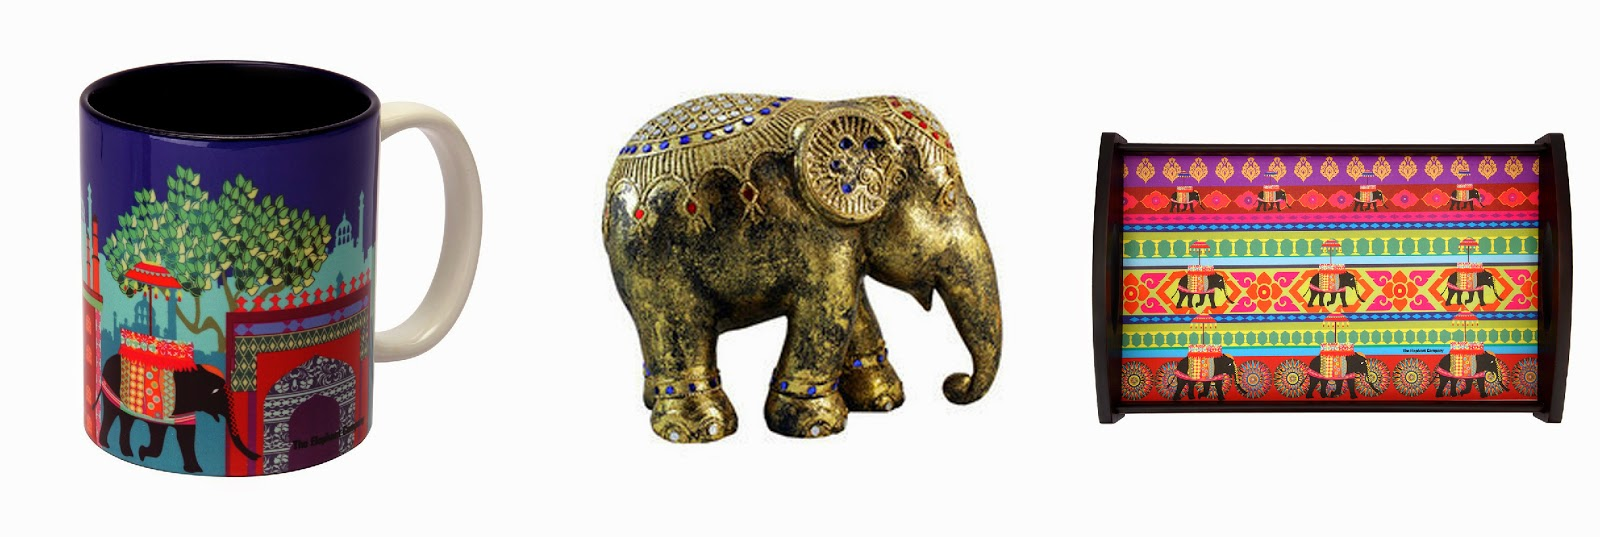 Elephants, artifacts, the elephant co, the elephant co, mugs , cups, glasses , tumblers, beer mugs, shot glasses, coffee mugs, table linen, napkins, placement mats, drink wear , table wear, cutlery, crockery, cutlery, trays, coasters, bedding, quilts, bedcovers, towels, hand towels, Chushion covers, decorative cushions , peg tables, coffee tables, side tables, stool cum tray tables, wall shelves, wall clocks, alarm clocks, clocks, storage, magazine racks , tissue box holder, wall art , wall decor, decorative mirrors, table lamps, candles, room freshners, photo frames, leather bags, shopping bags, sling bags, messenger bags,,khol as, wallets, tshirts,  iPad slings, mousepads, iPhonecovwrs, iPad sleeves,card holder, mugs online, cups online, glasses online, tumblers online, beer mugs online, shot glasses online, coffee mugs online, table linen online, napkins online, placement mats online, drink wear online, table wear online, cutlery online, crockery online, cutlery online, trays online, coasters, bedding  online, quilts online, bedcovers online, towels online, hand towels online, Chushion covers online, decorative cushions  online, peg tables online, coffee tables online, side tables online, stool cum tray tables online, wall shelves online, wall clocks online, alarm clocks online, clocks, storage online, magazine racks online, tissue box holder online, wall art online, wall decor online, decorative mirrors online , table lamps online, candles online, room freshners online, photo frames online, leather bags online, shopping bags online, sling bags online, messenger bags online,khol as online, wallets  tshirts   online, iPad slings online, mousepads online, iPhonecovwrs online, iPad sleeves online, card holder online, The elephant co review, the elephant company review, The elephant co india, the elephant company india, the elephant company price, the elephant co price, the elephant company product review, the elephant co product review, Mumbai, delhi, Bangalore, goa